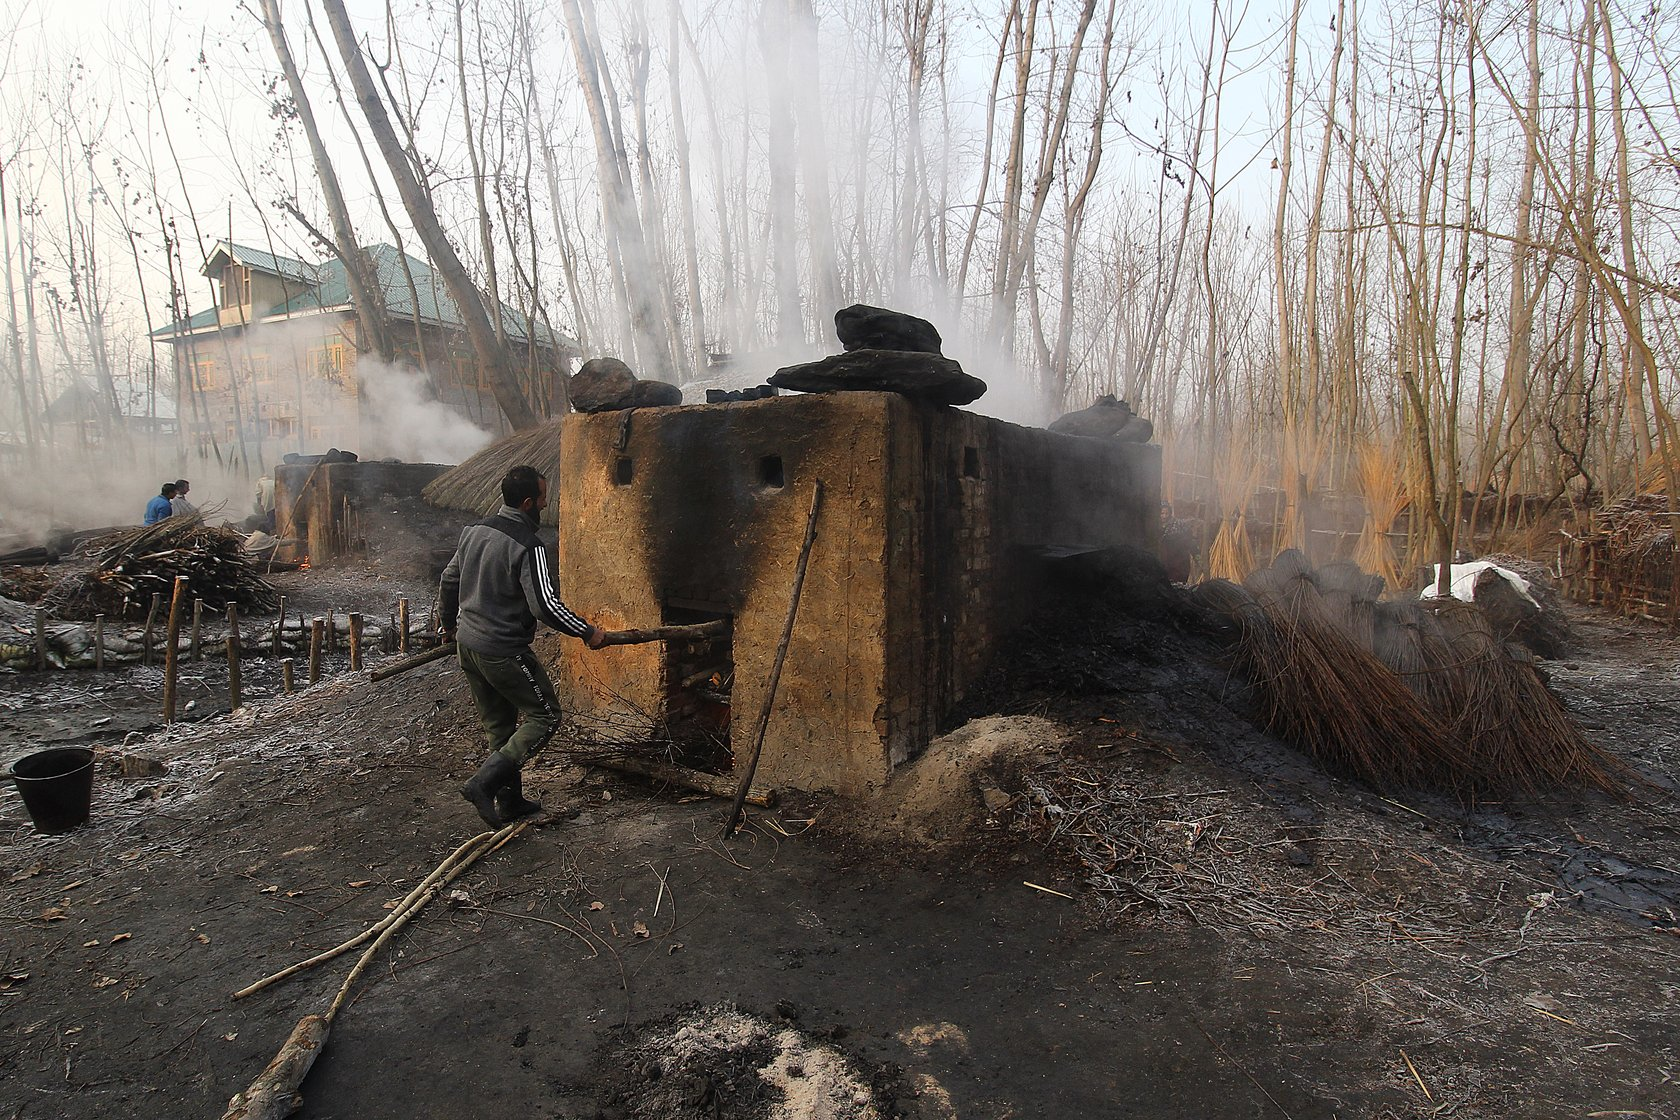 Waseem Ahmad, 32, a resident of Umerhere, fills firewood in the oven in which the wicker is to be boiled overnight